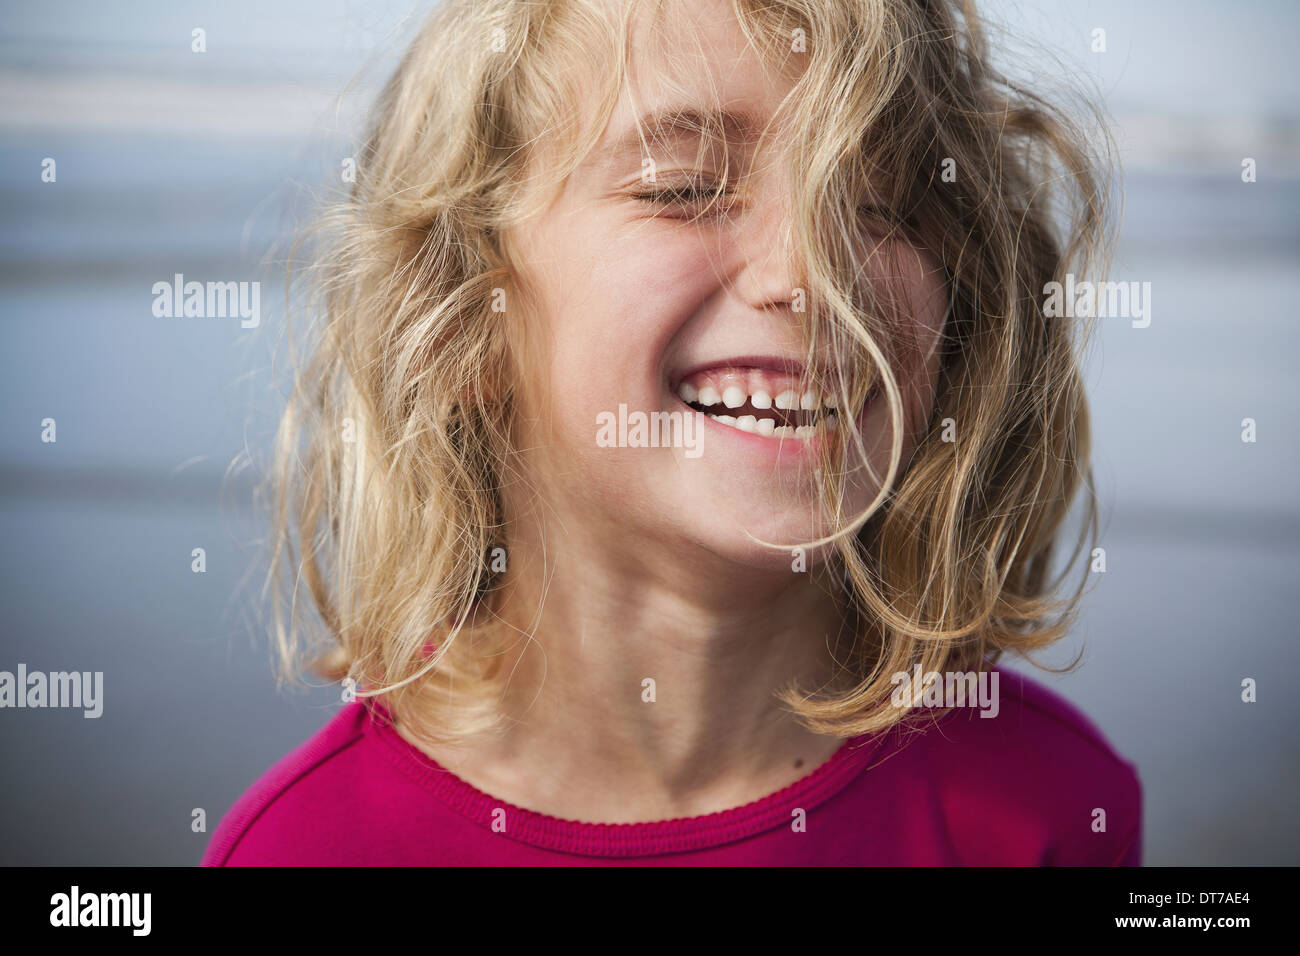 A laughing six year old gir A portrait Pacific County WA USA - Stock Image